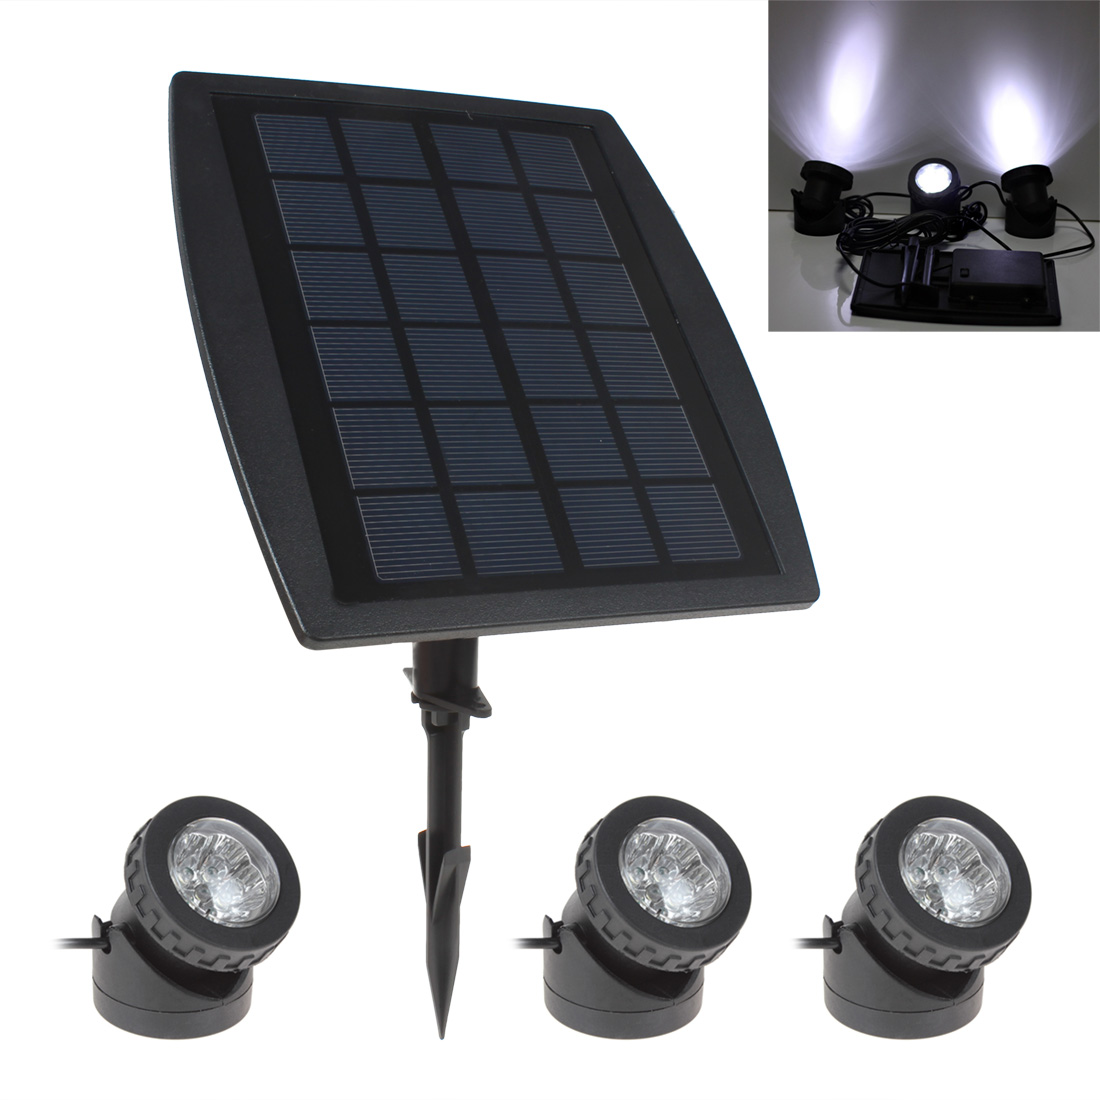 Waterproof LED Solar Light Adjustable BSV SL318 3 x 6 LEDs Light Solar Powered Garden Lamp with Solar Panel-in Solar Lamps from Lights & Lighting    1